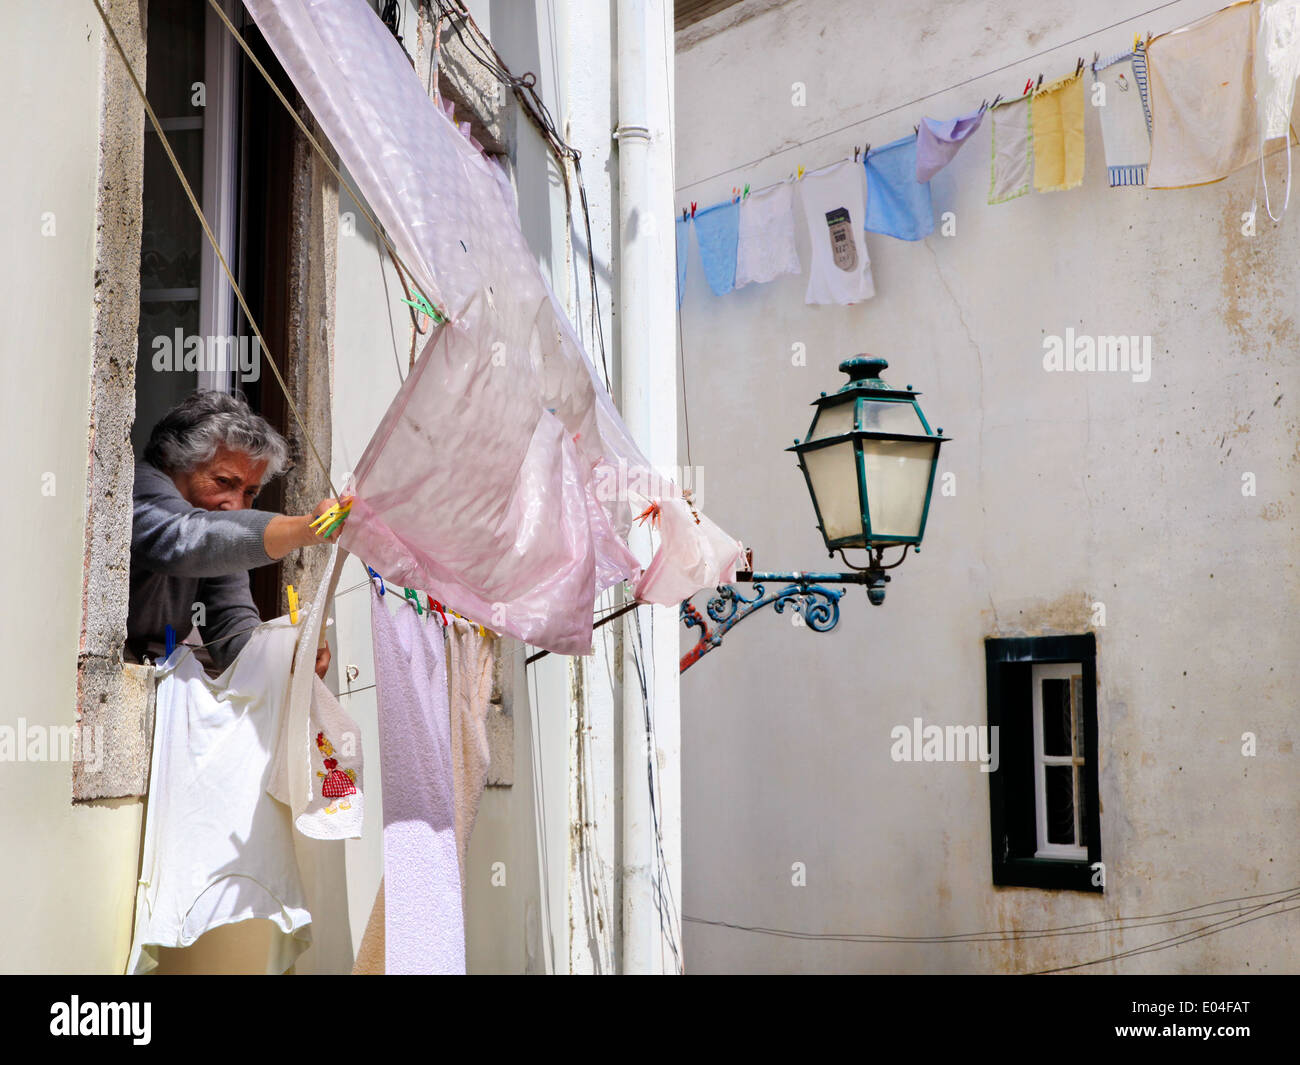 Woman in daily routine in Alfama, Lisbon - Stock Image